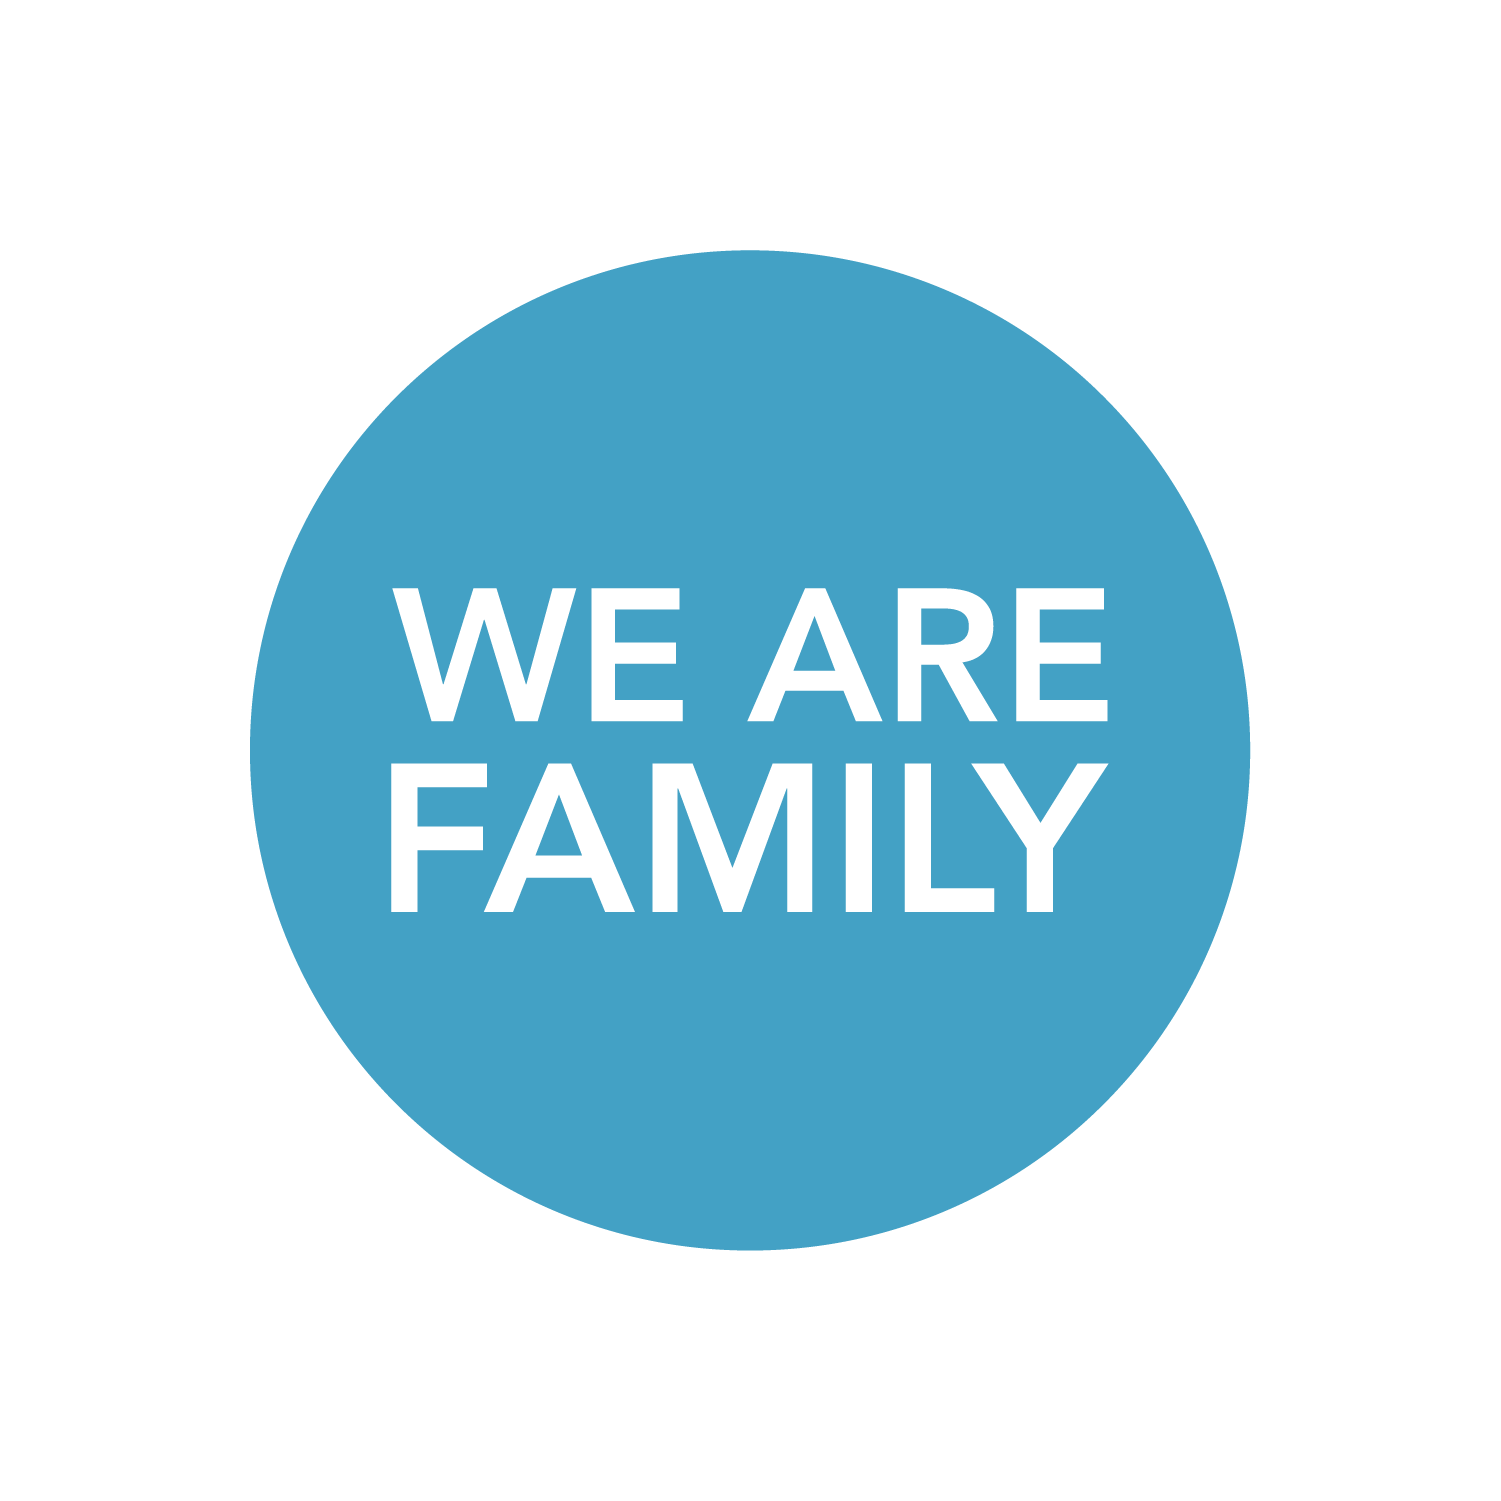 mission-vision_we-are-family.png